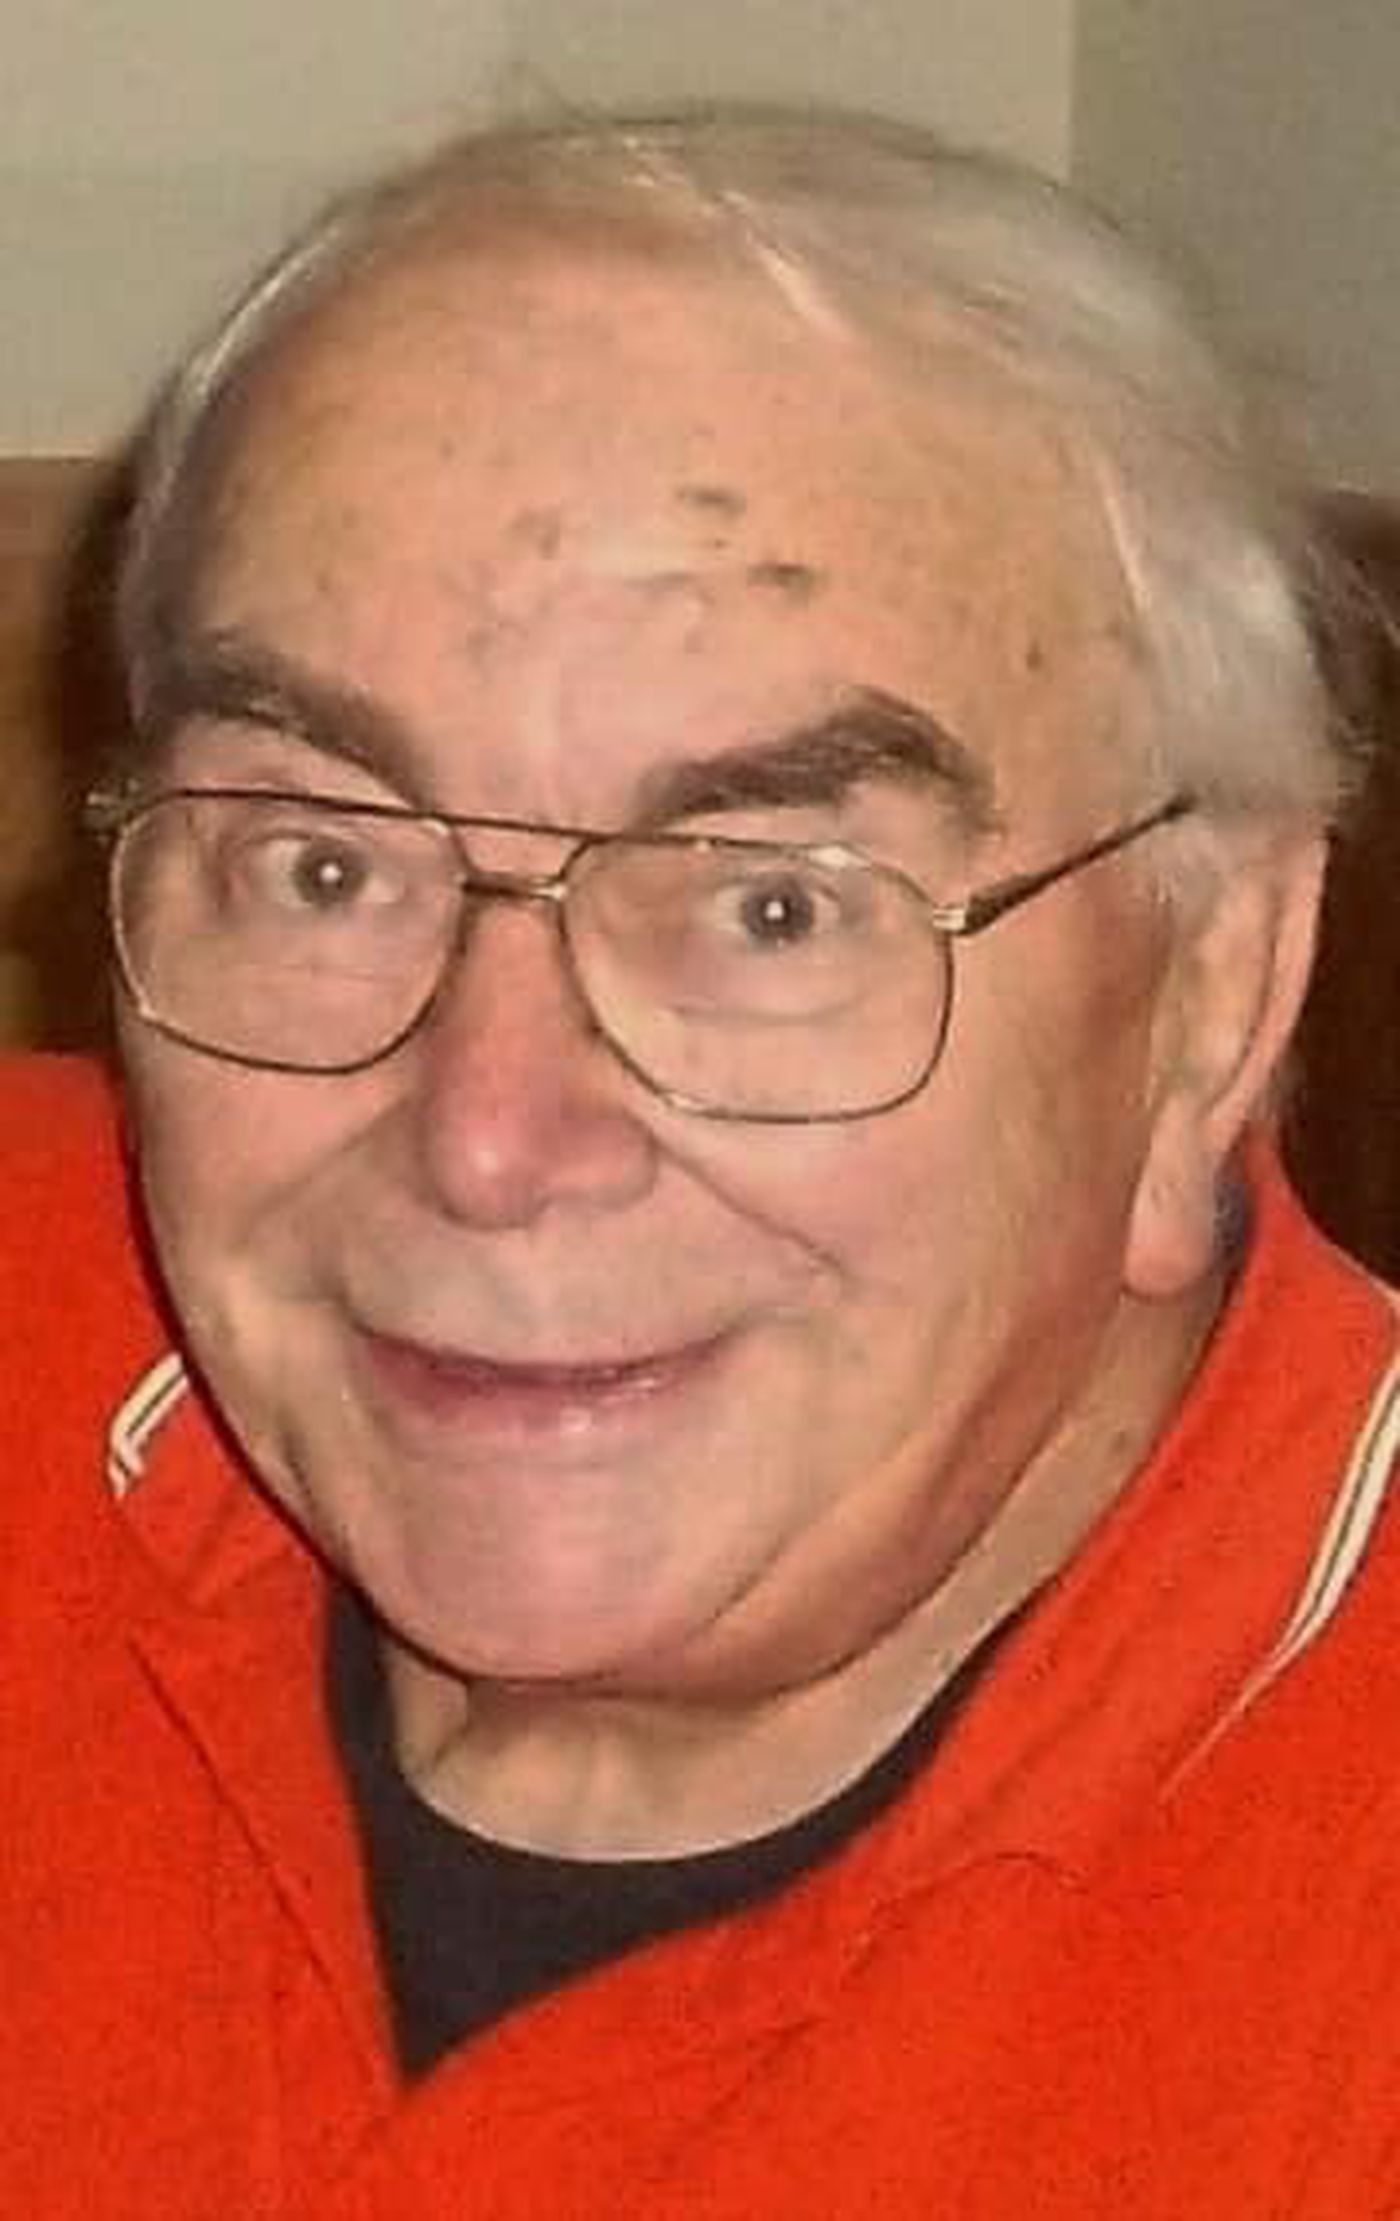 Jack Chevalier, sports writer who coined 'Broad Street Bullies' nickname, dies at 83